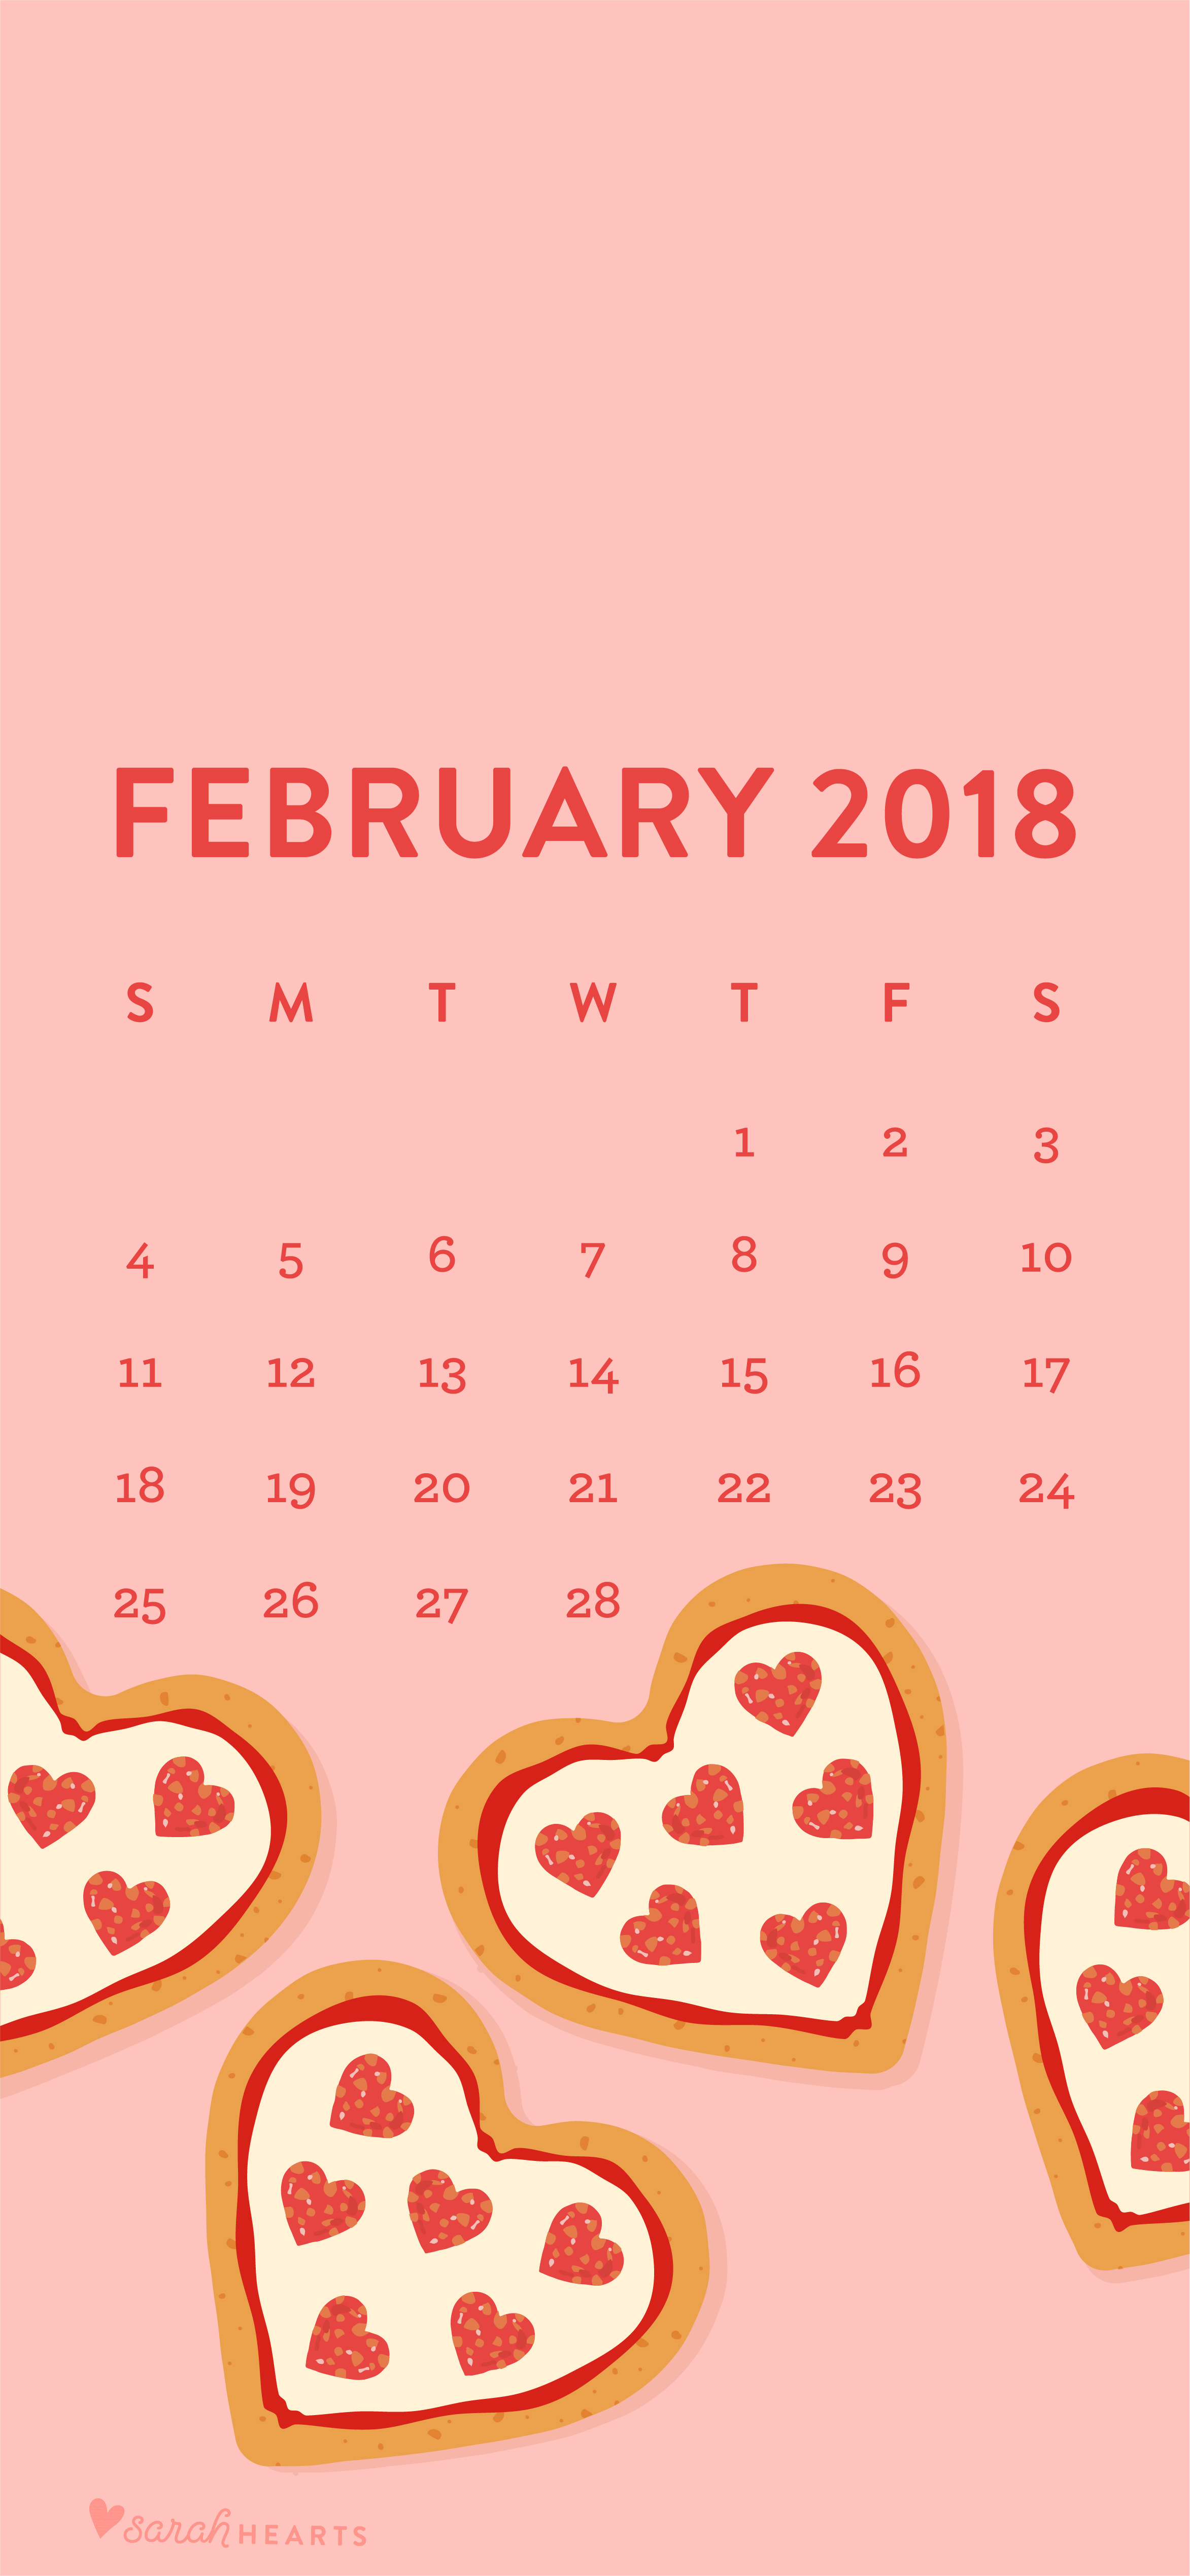 February Calendar Wallpaper Phone : Heart shaped pizza february calendar wallpaper